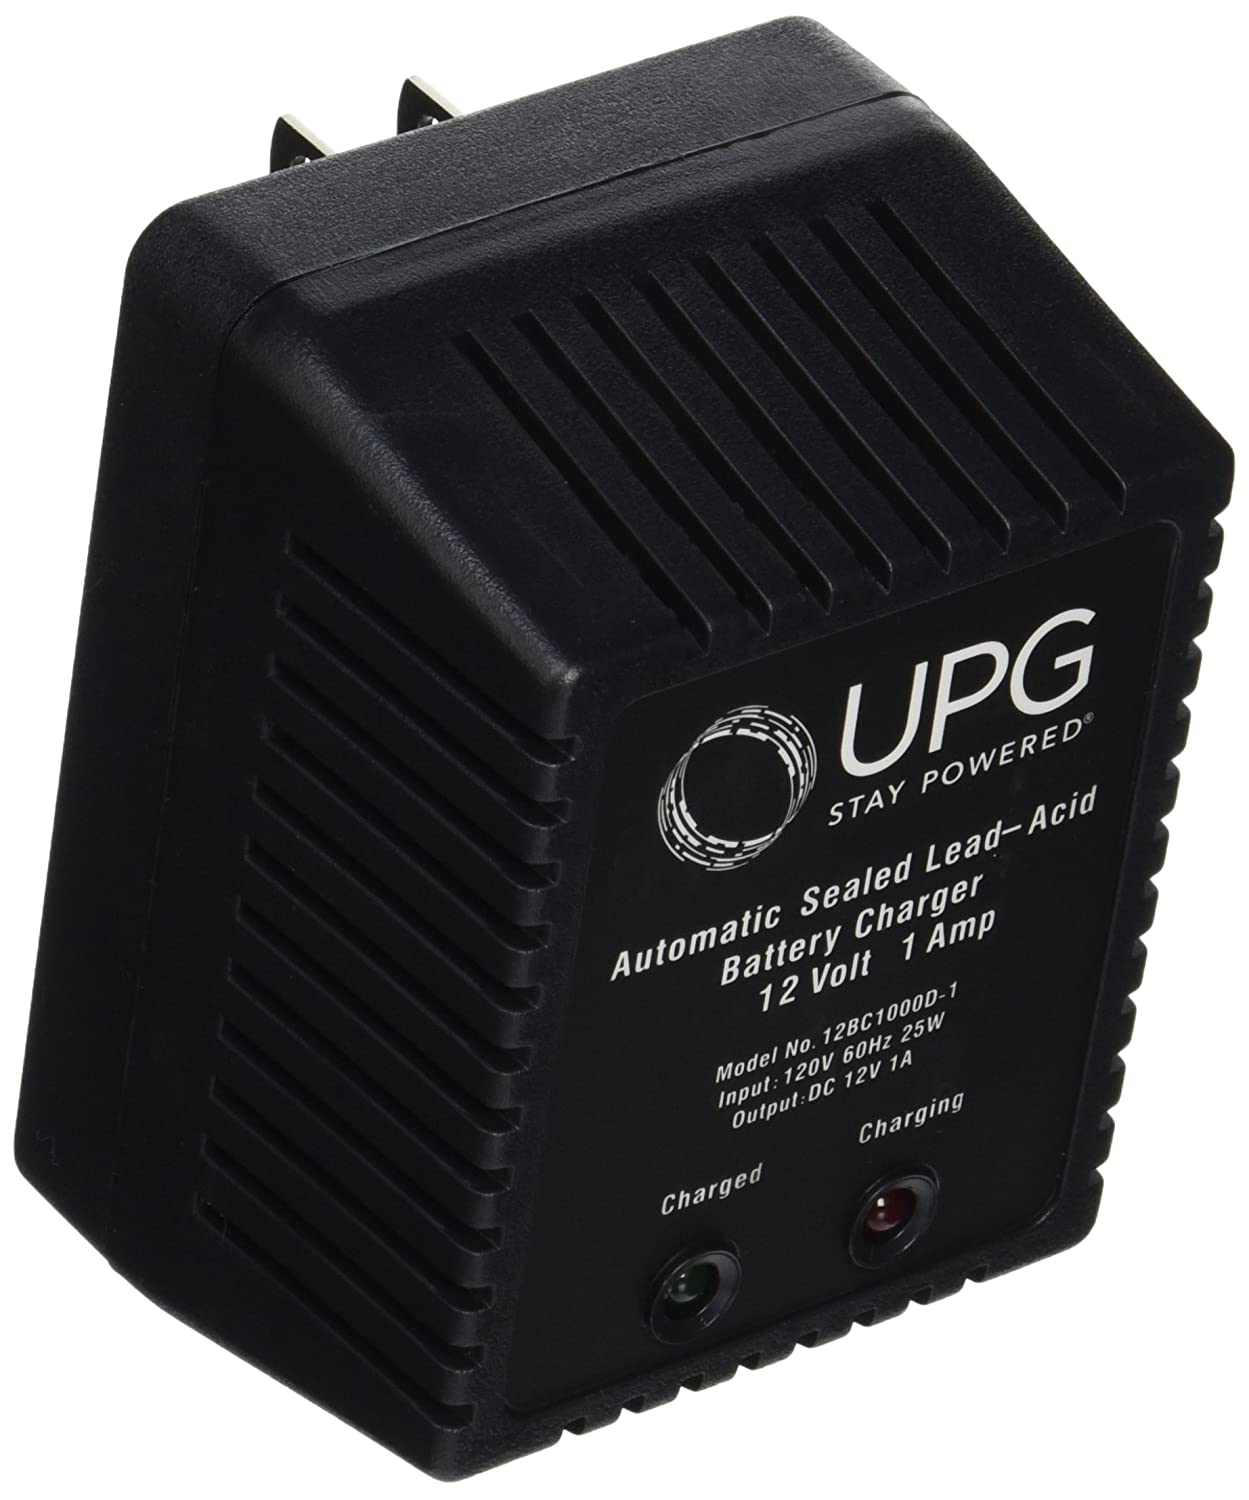 UPG D1724 Sealed Lead Acid Battery Charger (6V/12V Switchable Single-Stage with Alligator Clips) UNIVERSAL POWER GROUP